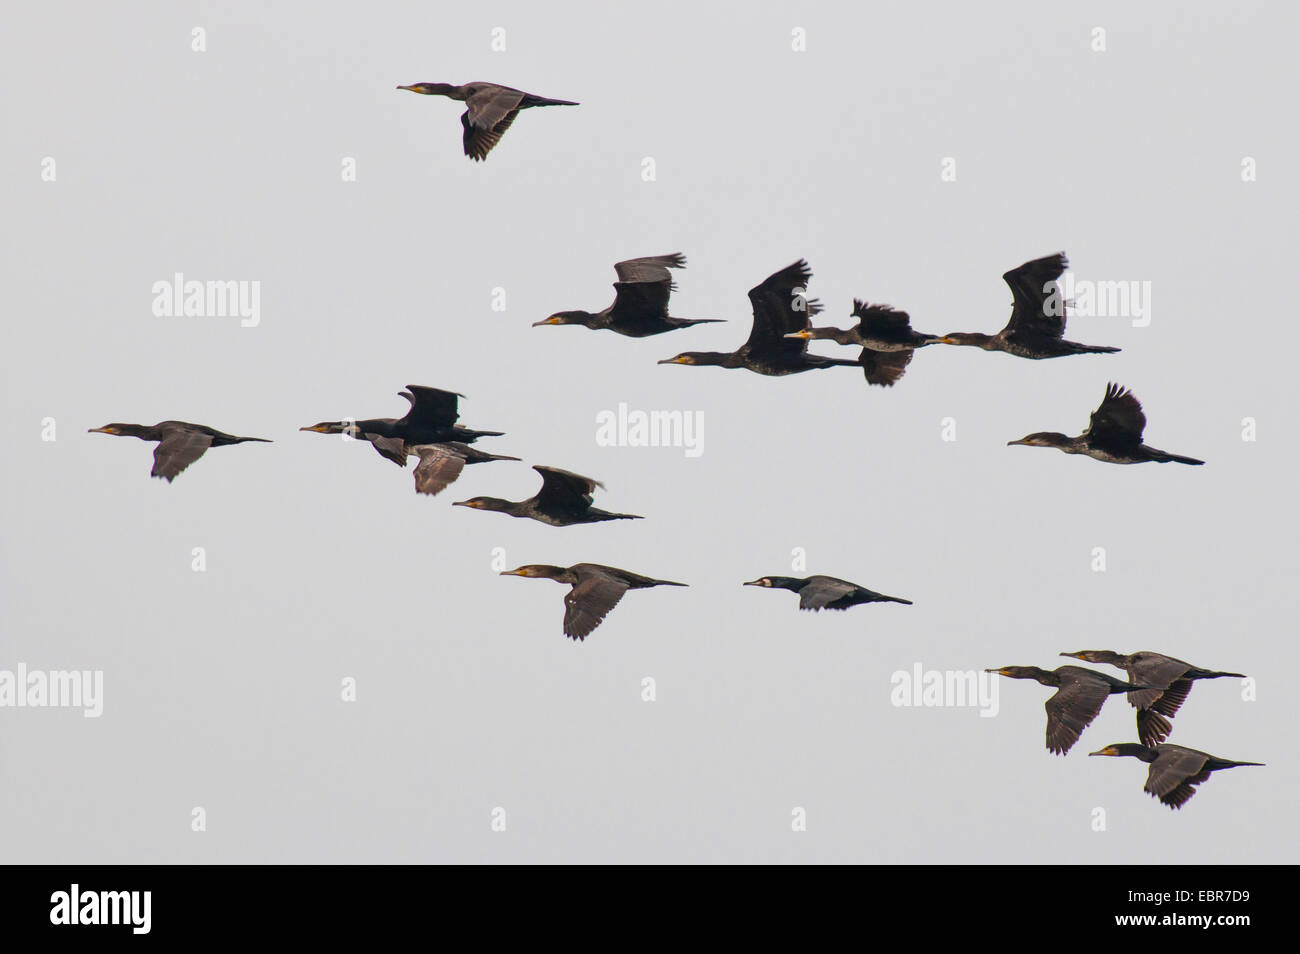 great cormorant (Phalacrocorax carbo), cormorants in flight, Germany, Lower Saxony, Spiekeroog - Stock Image